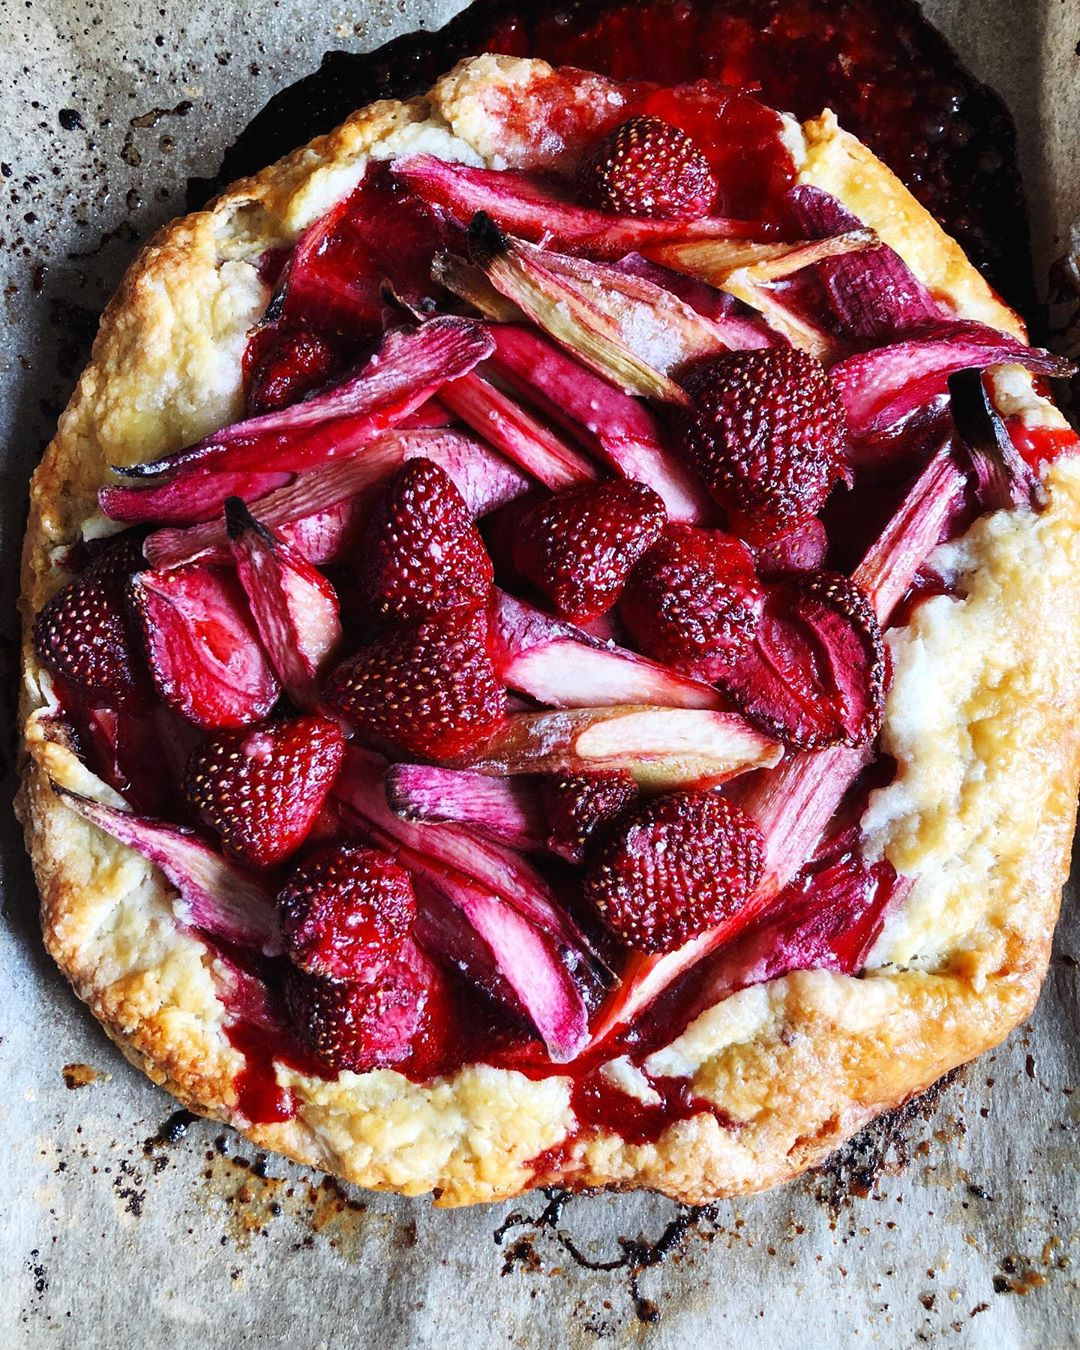 Strawberry Galette by Sarah Jampel